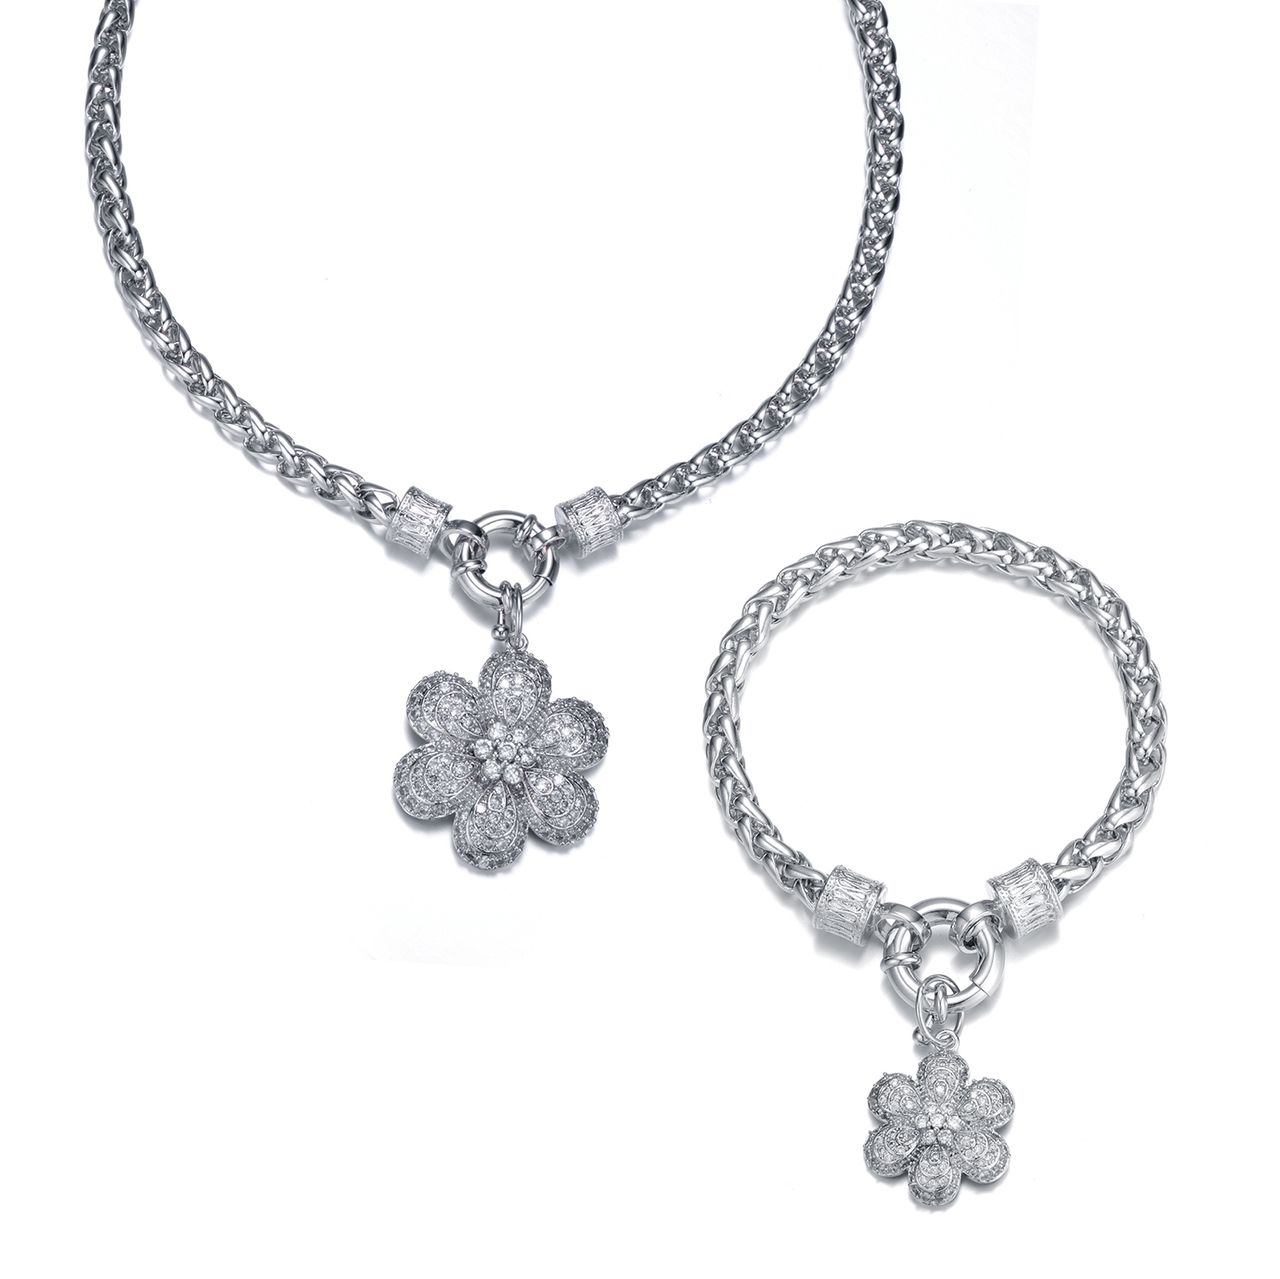 Penina Rhodium w/Removable Flower centerpiece and Matching Bracelet - Accent your style with a beautiful piece of costume jewelry. Make the perfect outfit complete with this Rhodium Necklace w/Cubic Zirconia Removable centerpiece and Matching Bracelet.